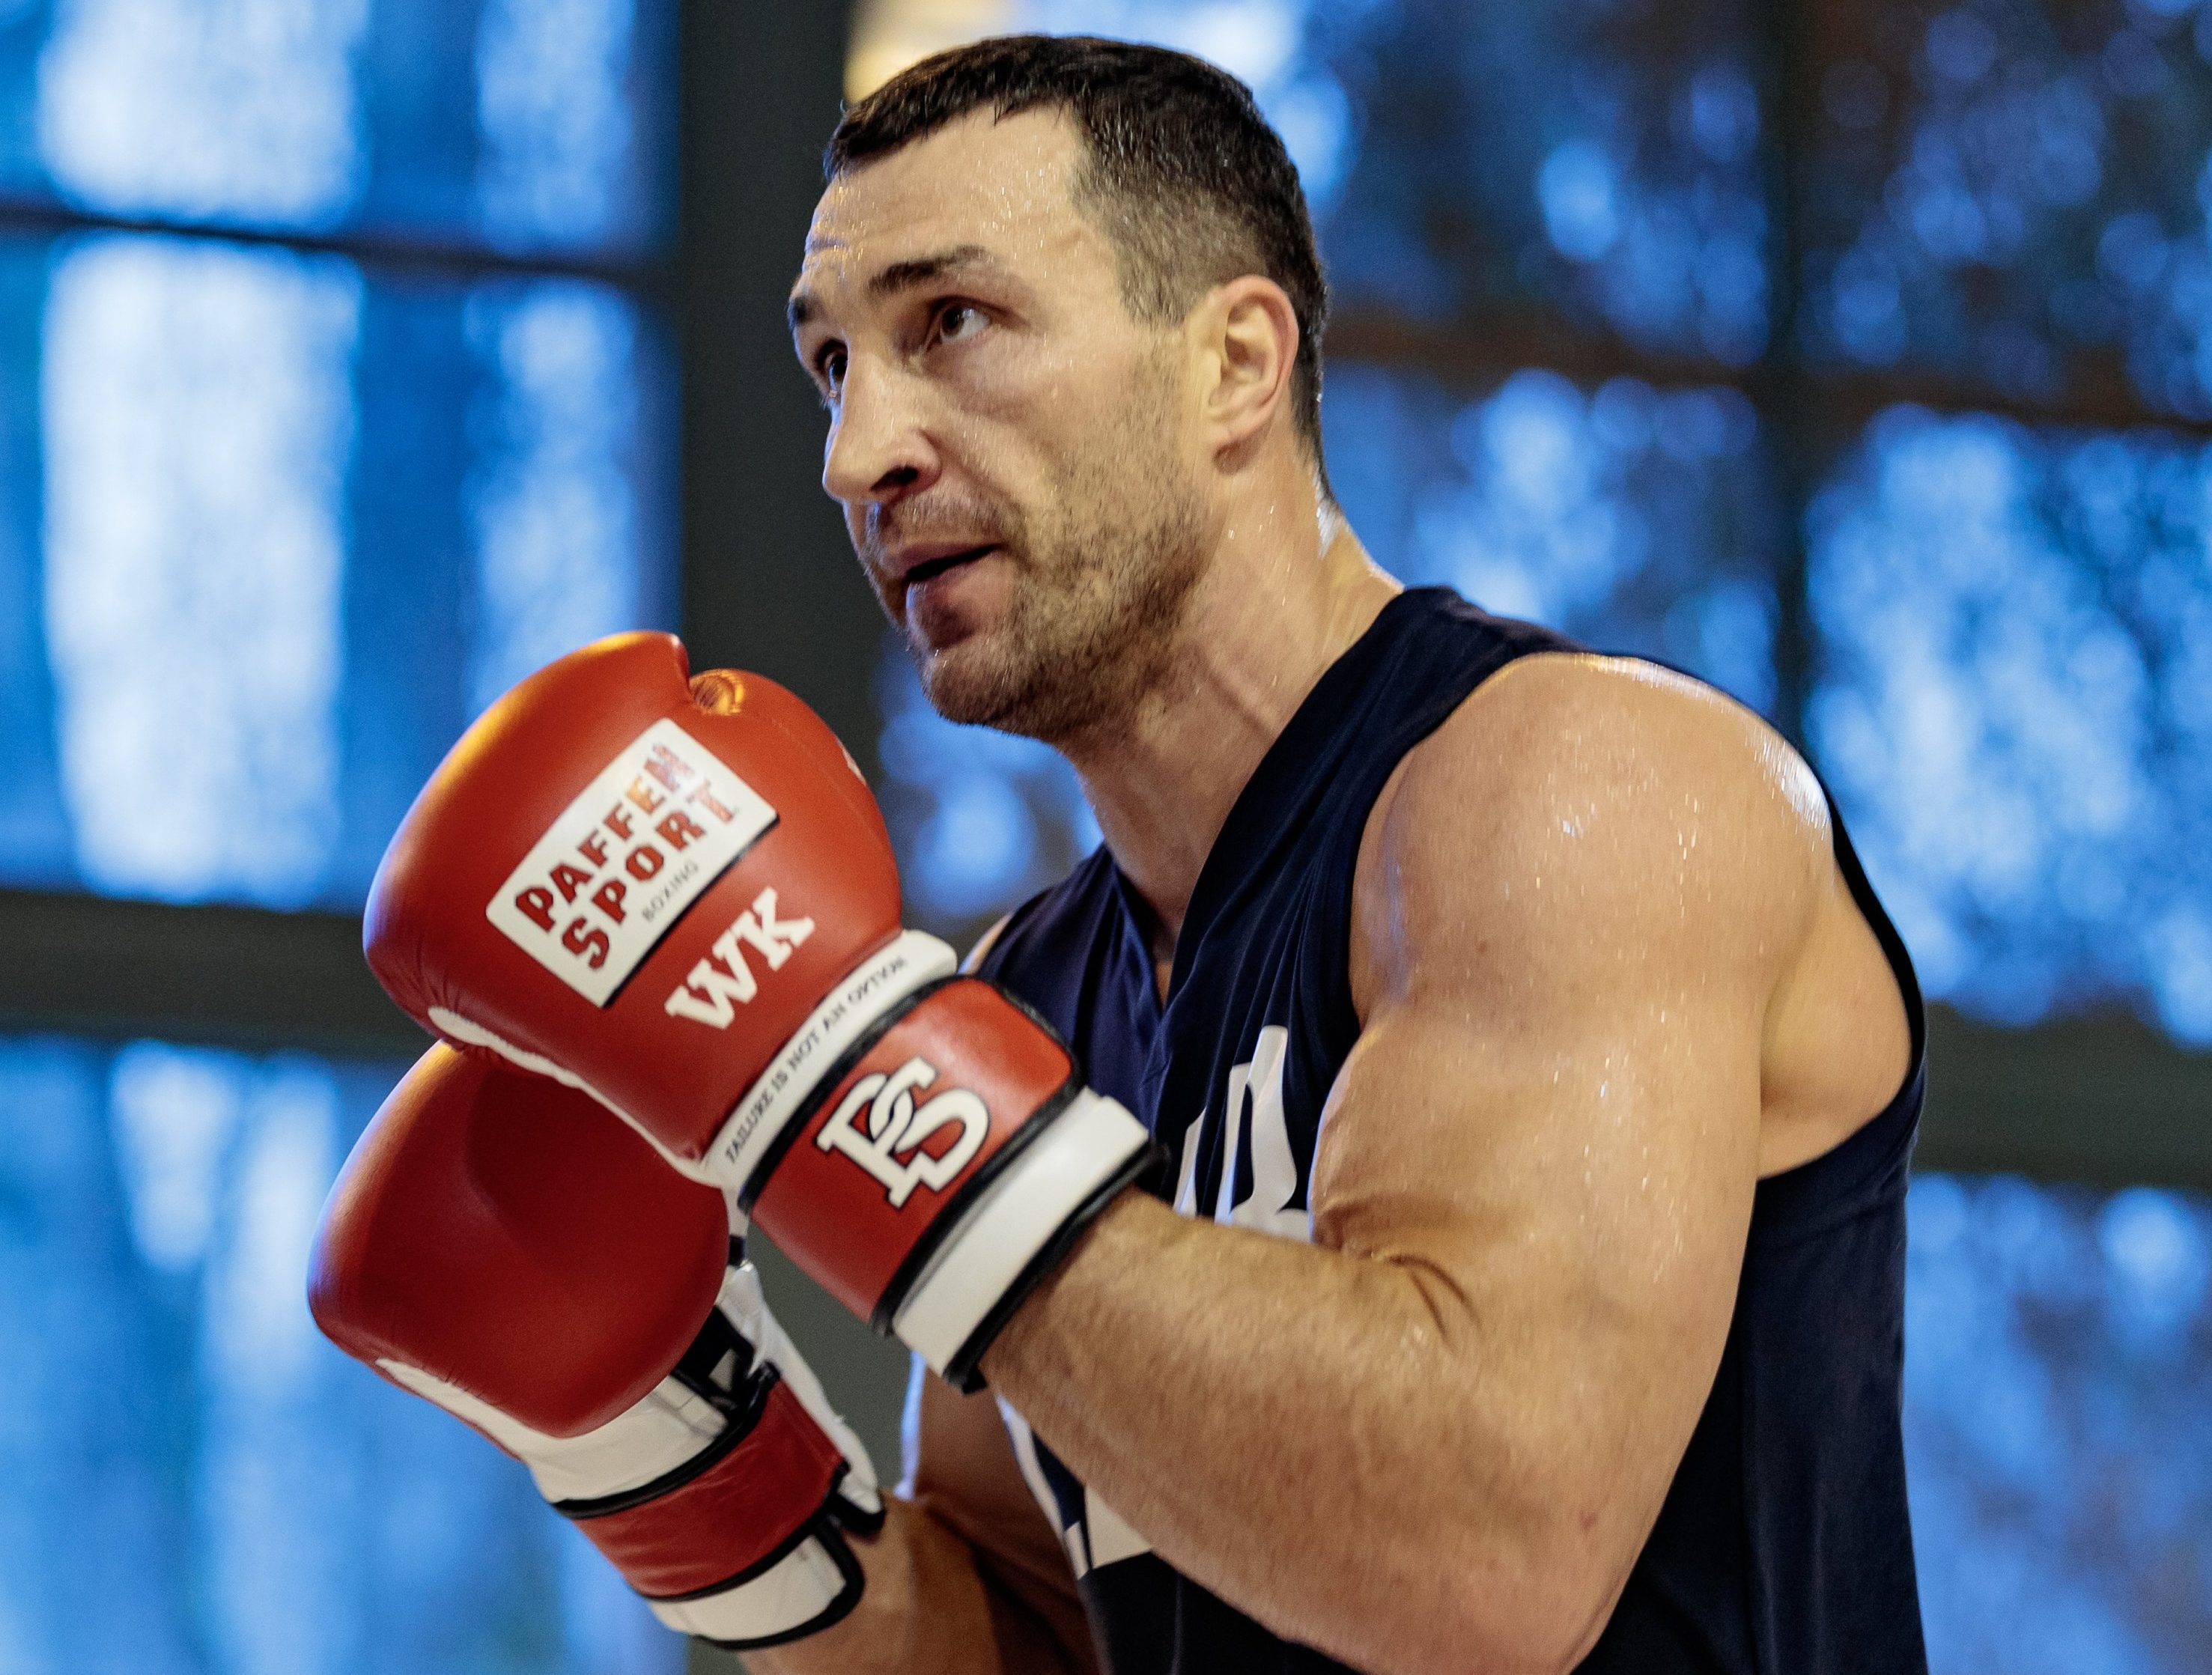 Promoter Hearn revealed Wladimir Klitschko has been speaking with DAZN regarding a lucrative comeback to the ring